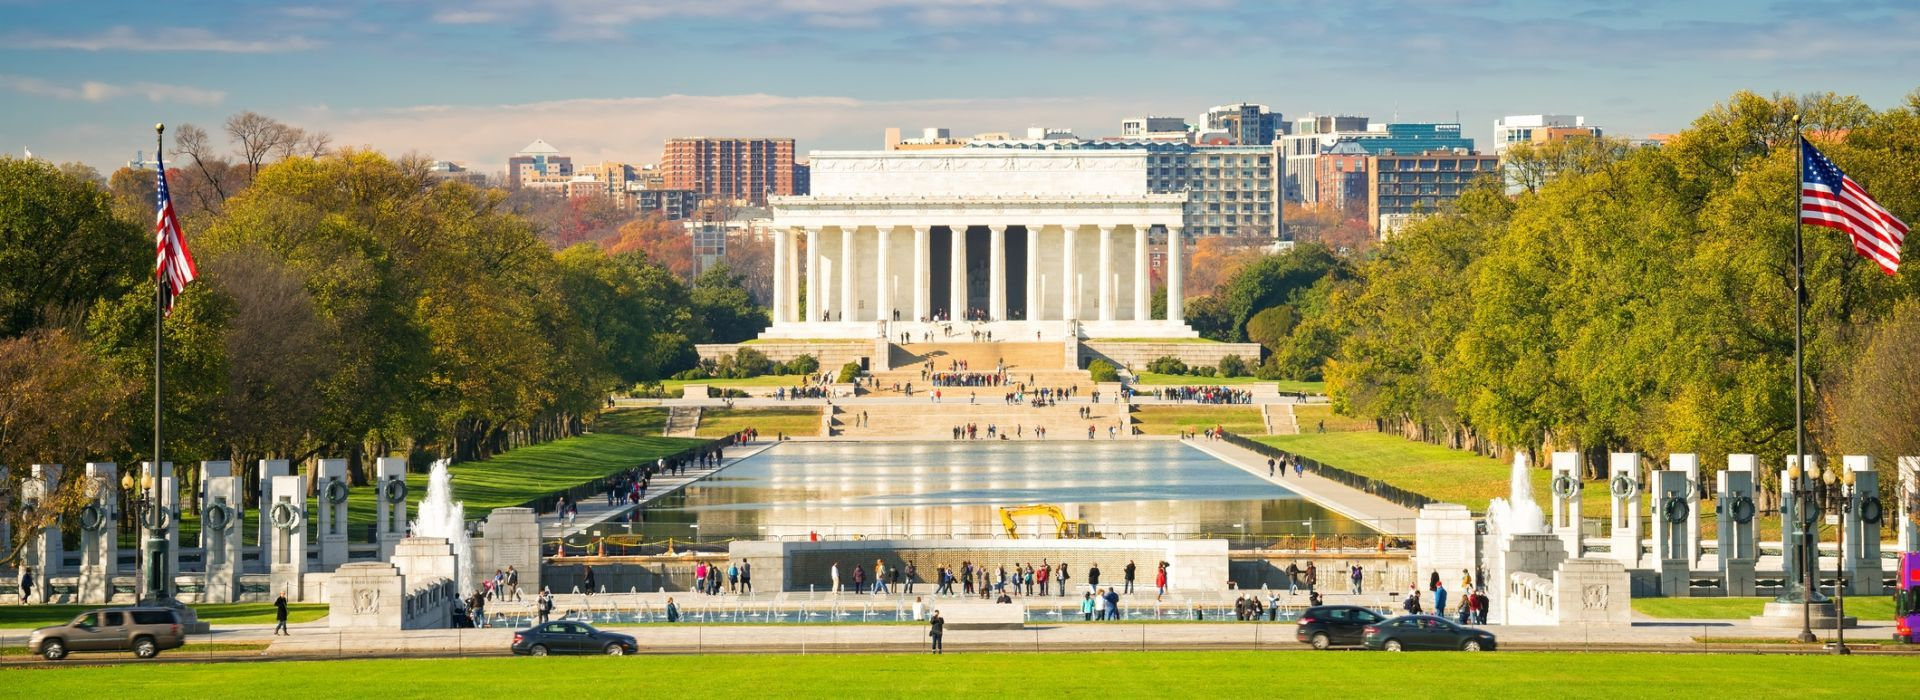 Sightseeing, attractions, culture and history Tours in New York